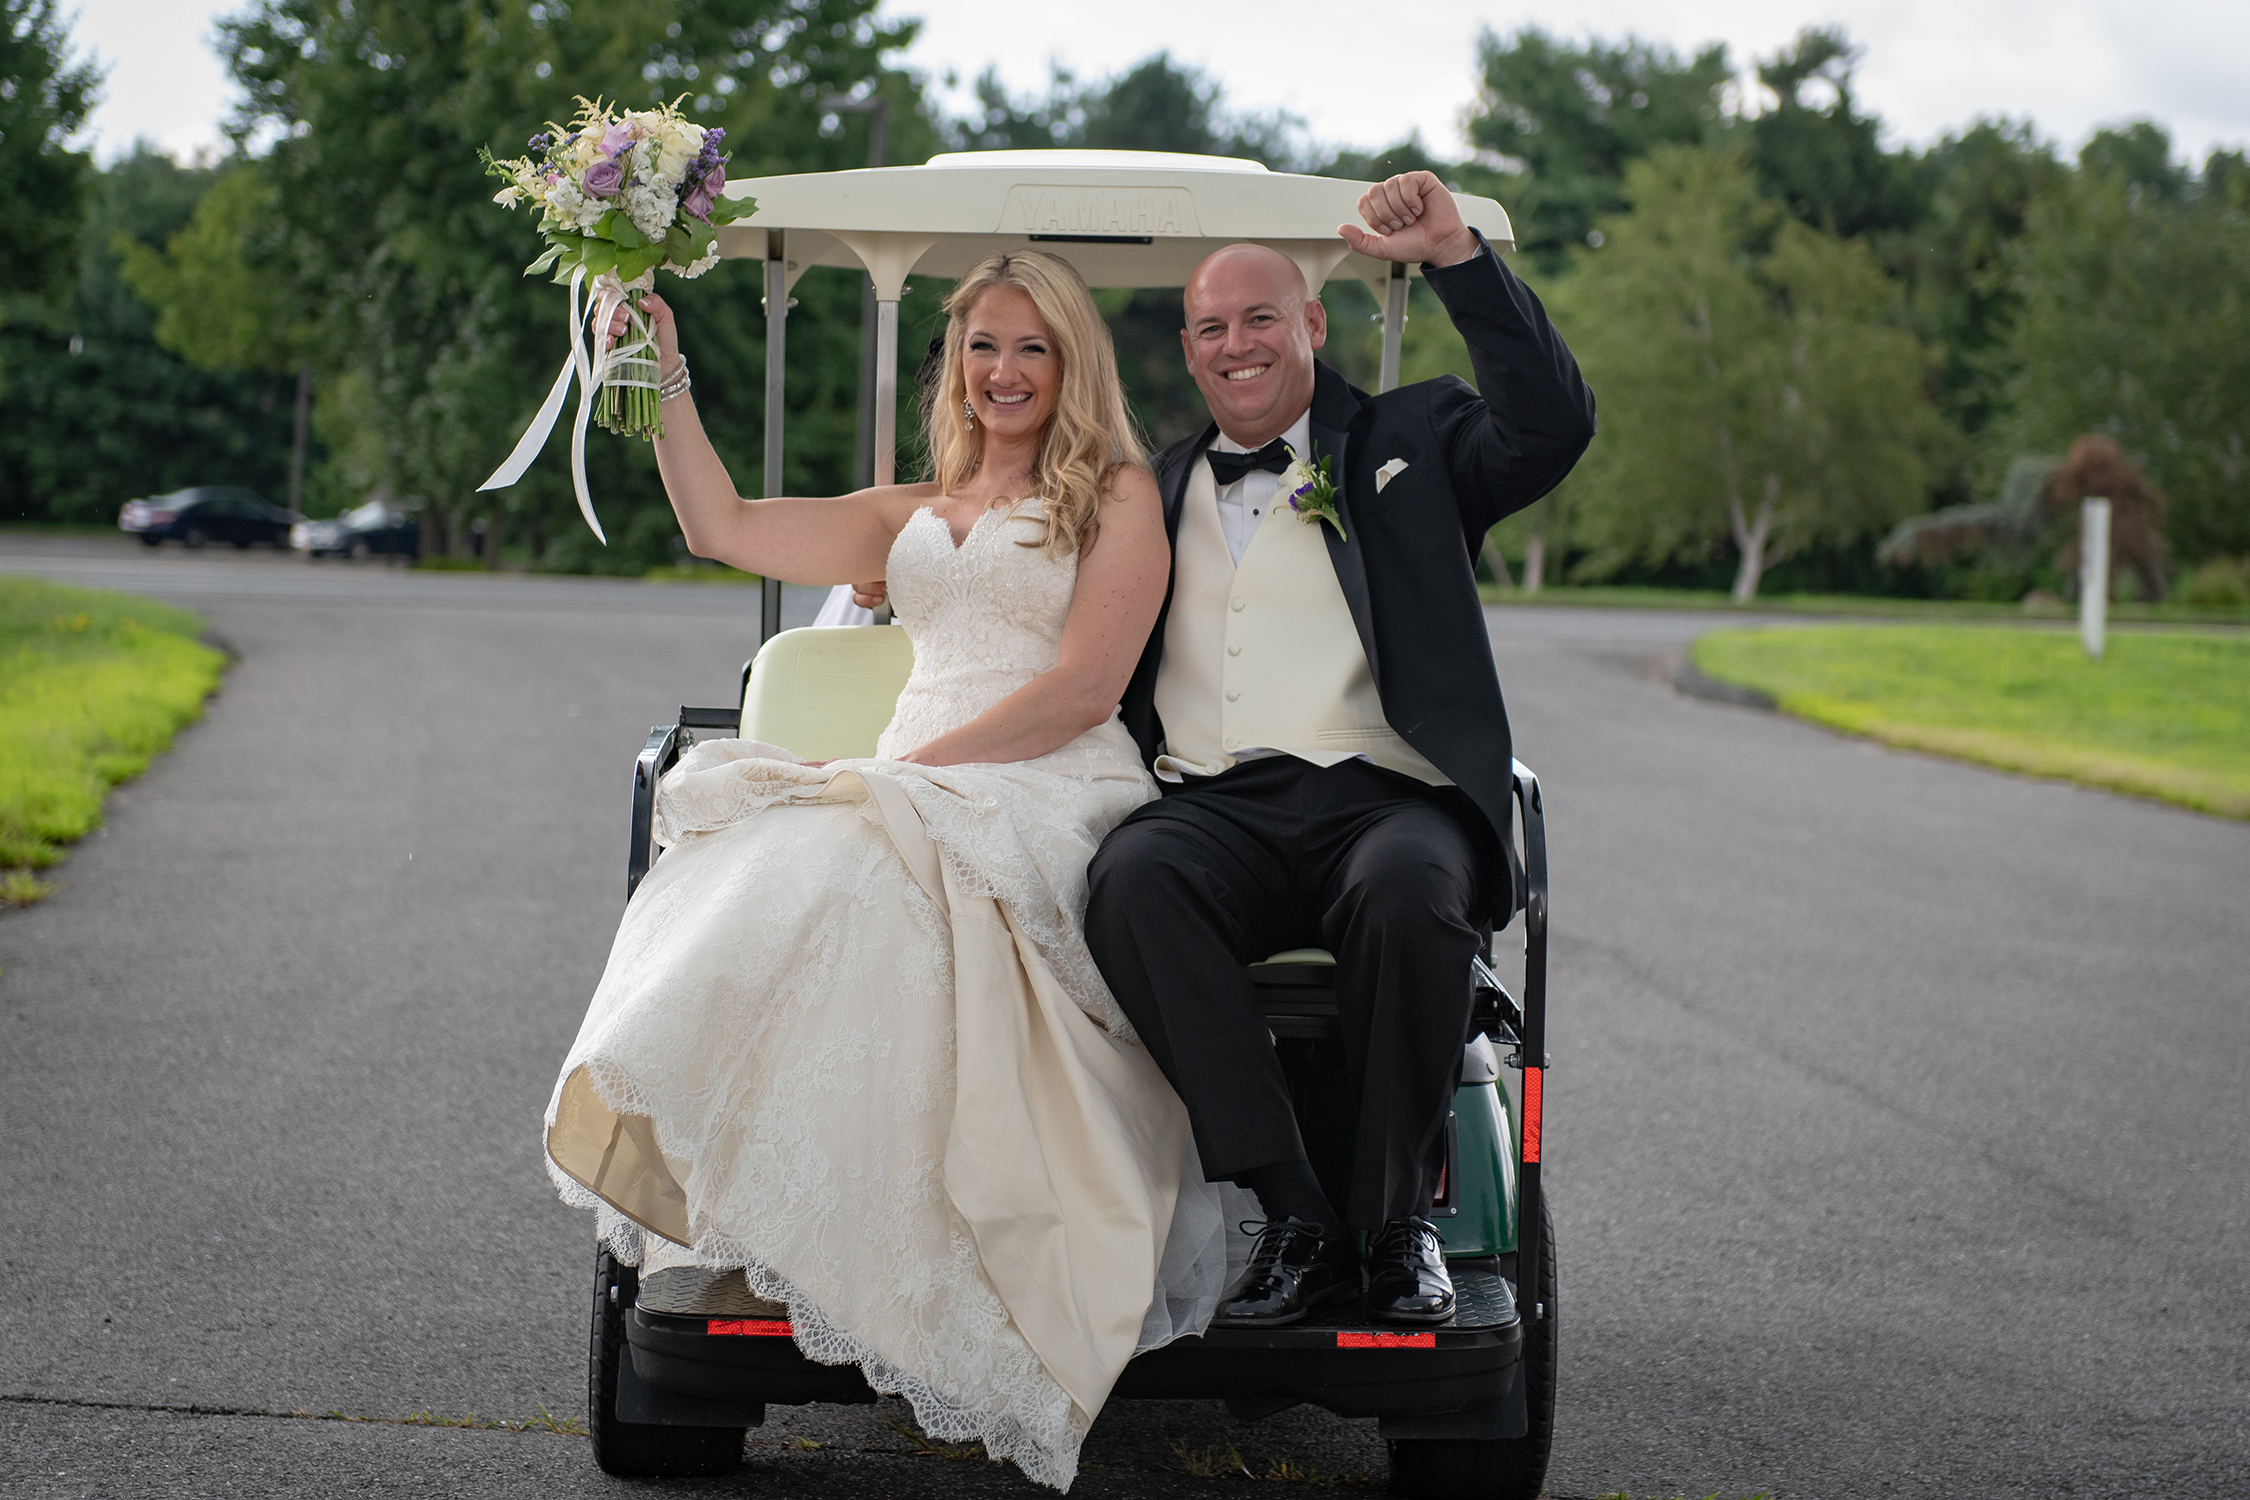 The Maneely's Wedding Golf Cart